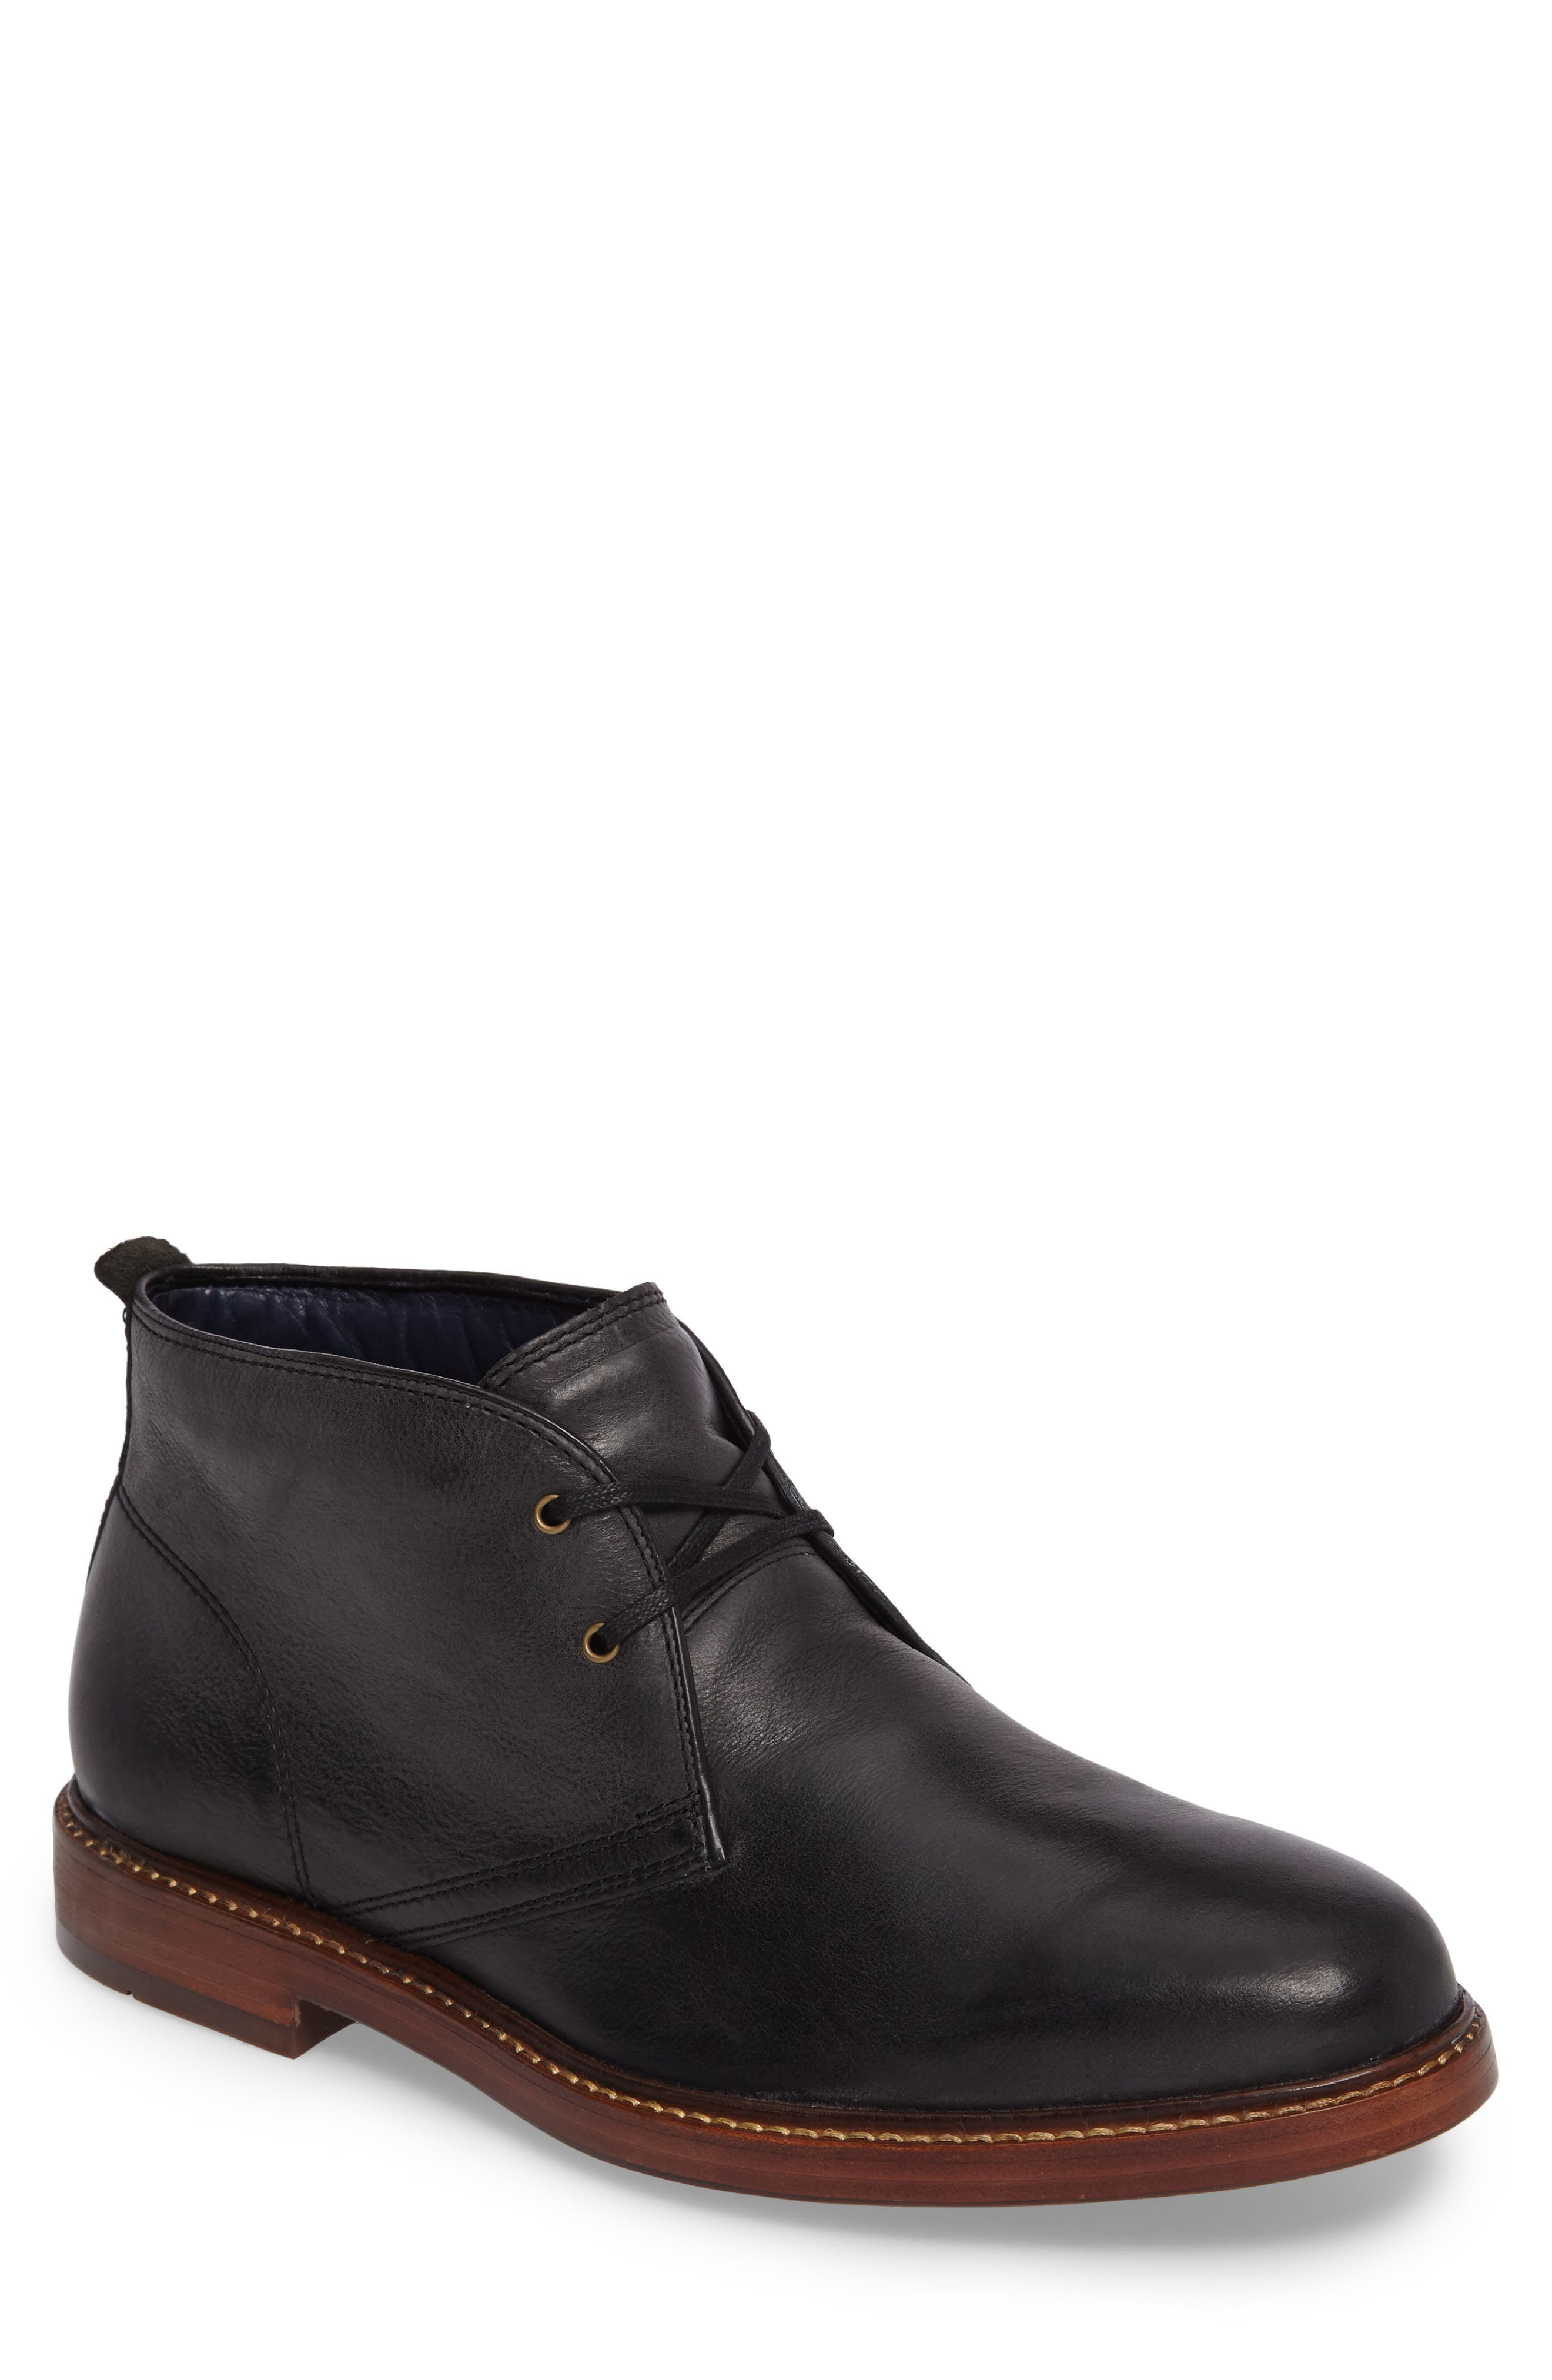 Alternate Image 1 Selected - Cole Haan Tyler Chukka Boot (Men)